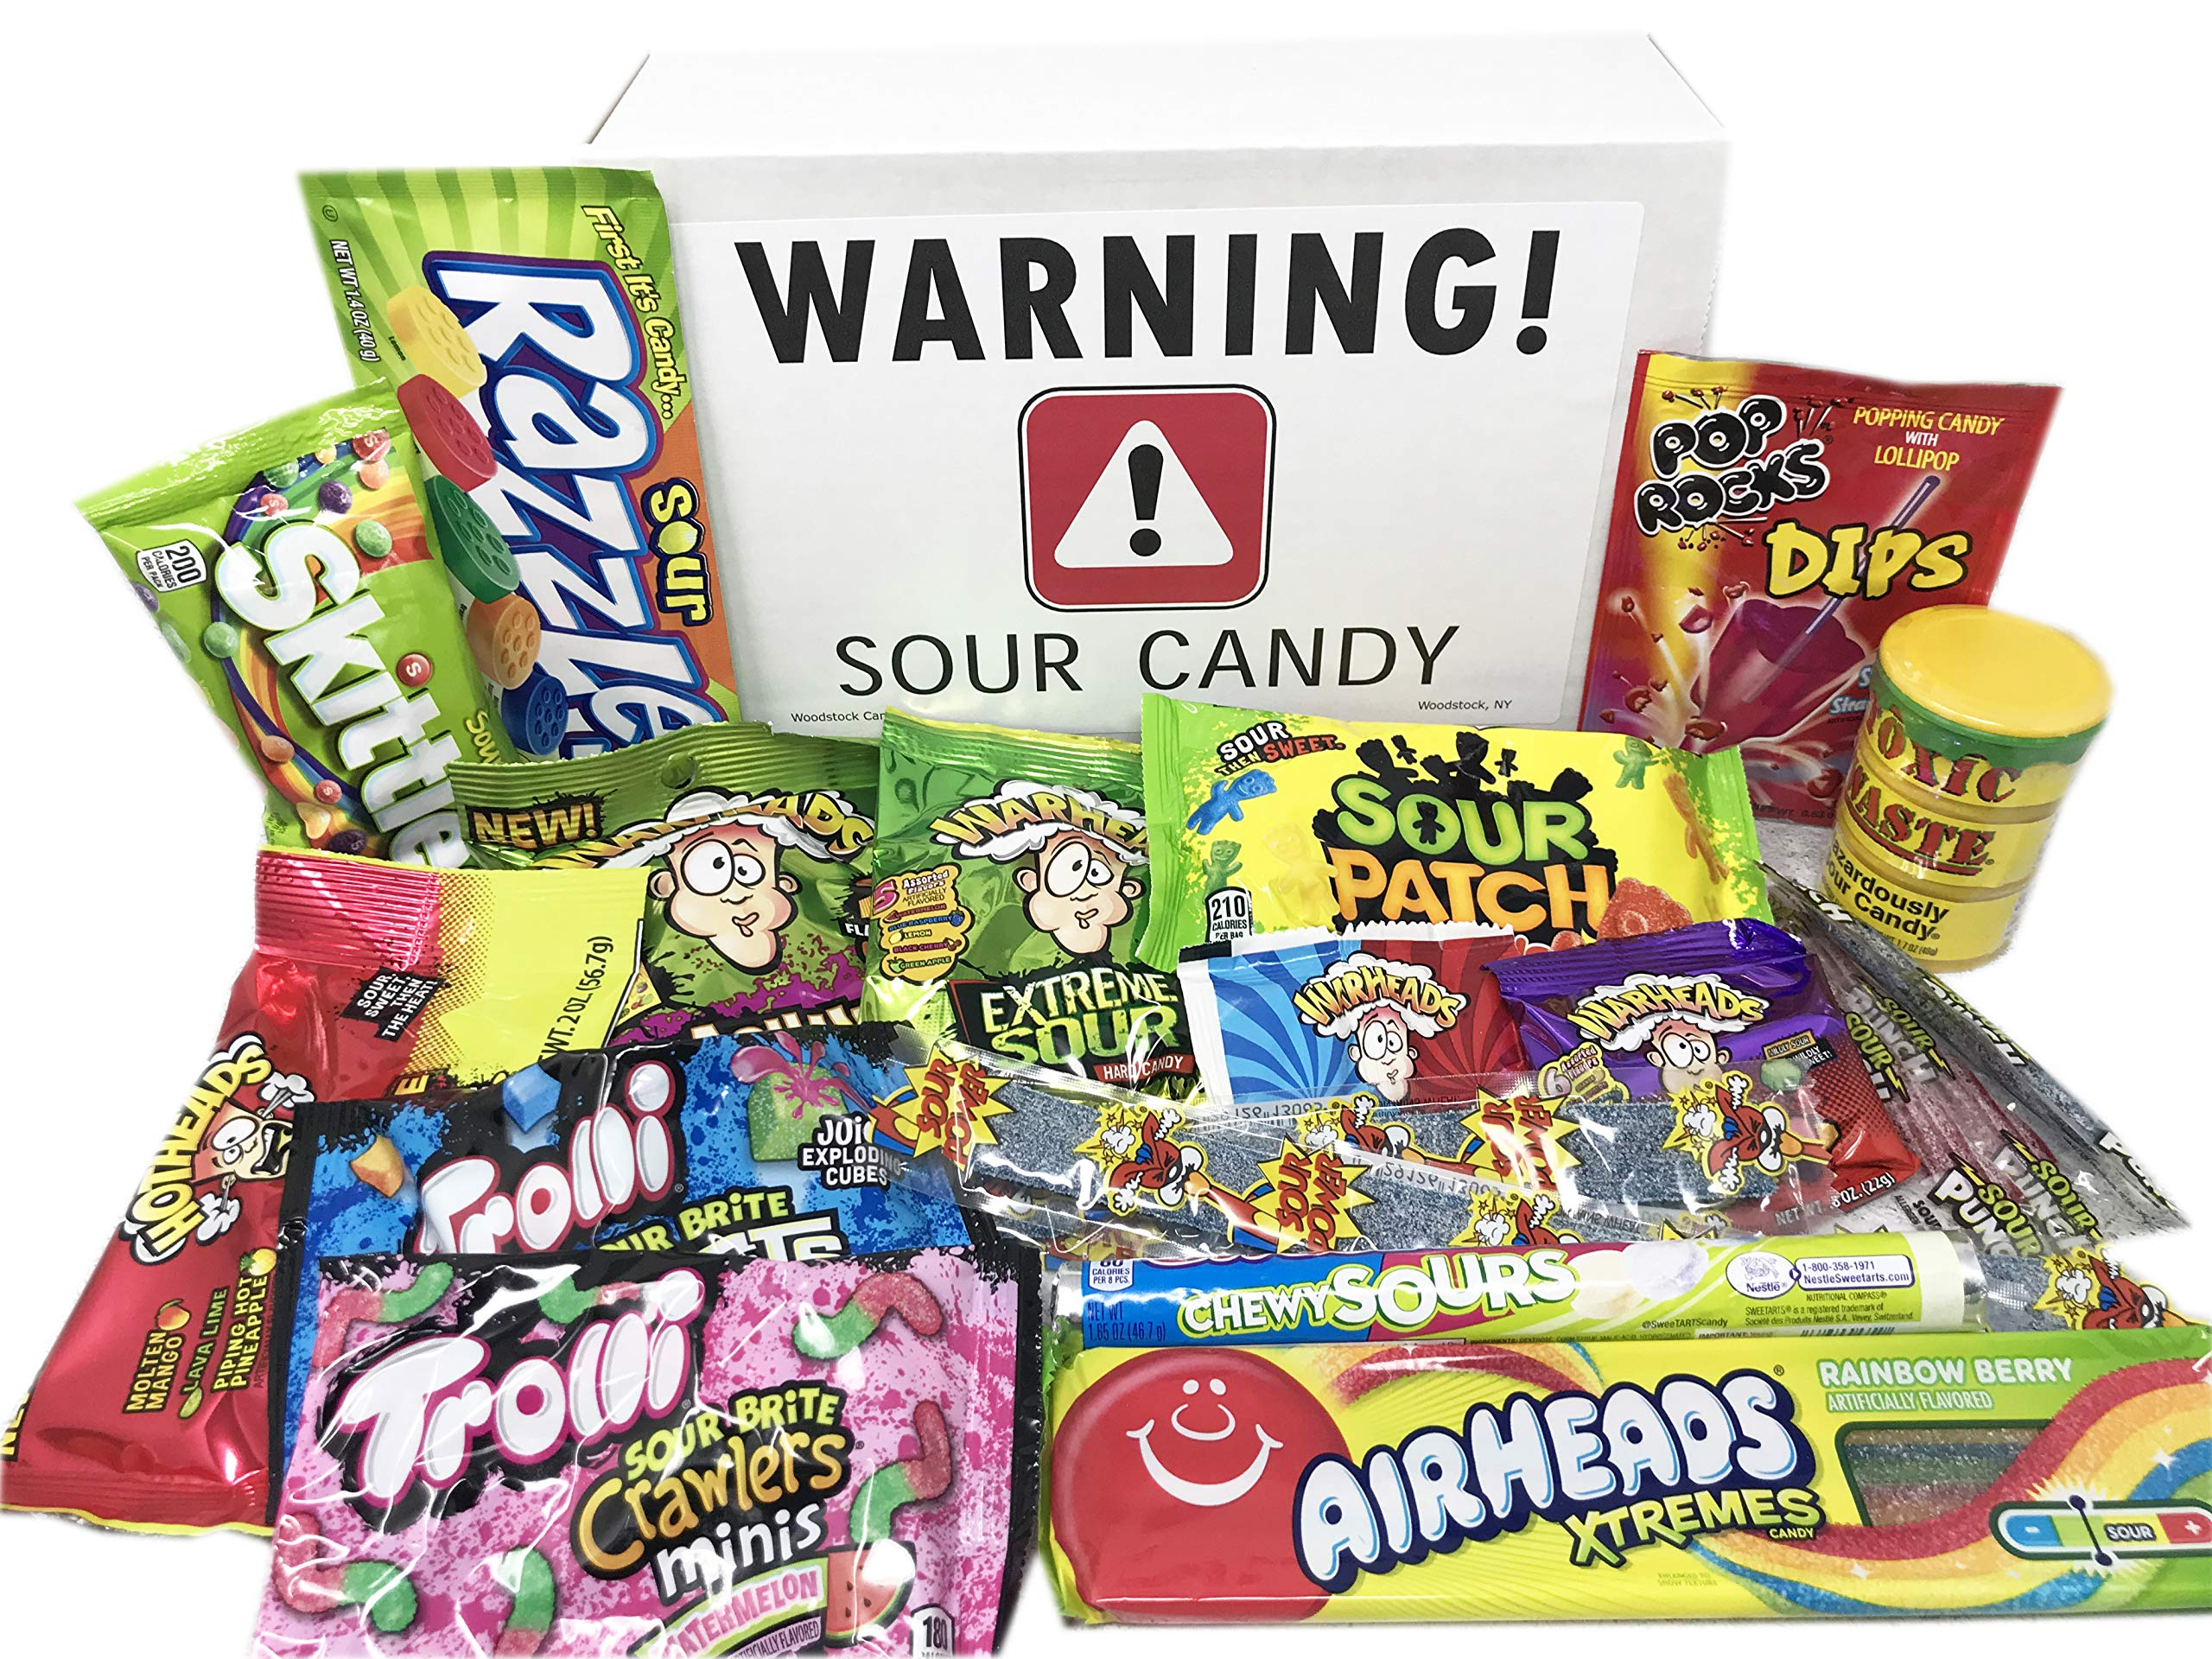 Super Sour Candy Assortment with Toxic Waste, Sour Patch Kids, Warheads Extreme Hard Candy, Belts, Smashups, Straws, Pop Rocks Dip, Skittles, Watermelon Sour Candies ~ Jr by Woodstock Candy